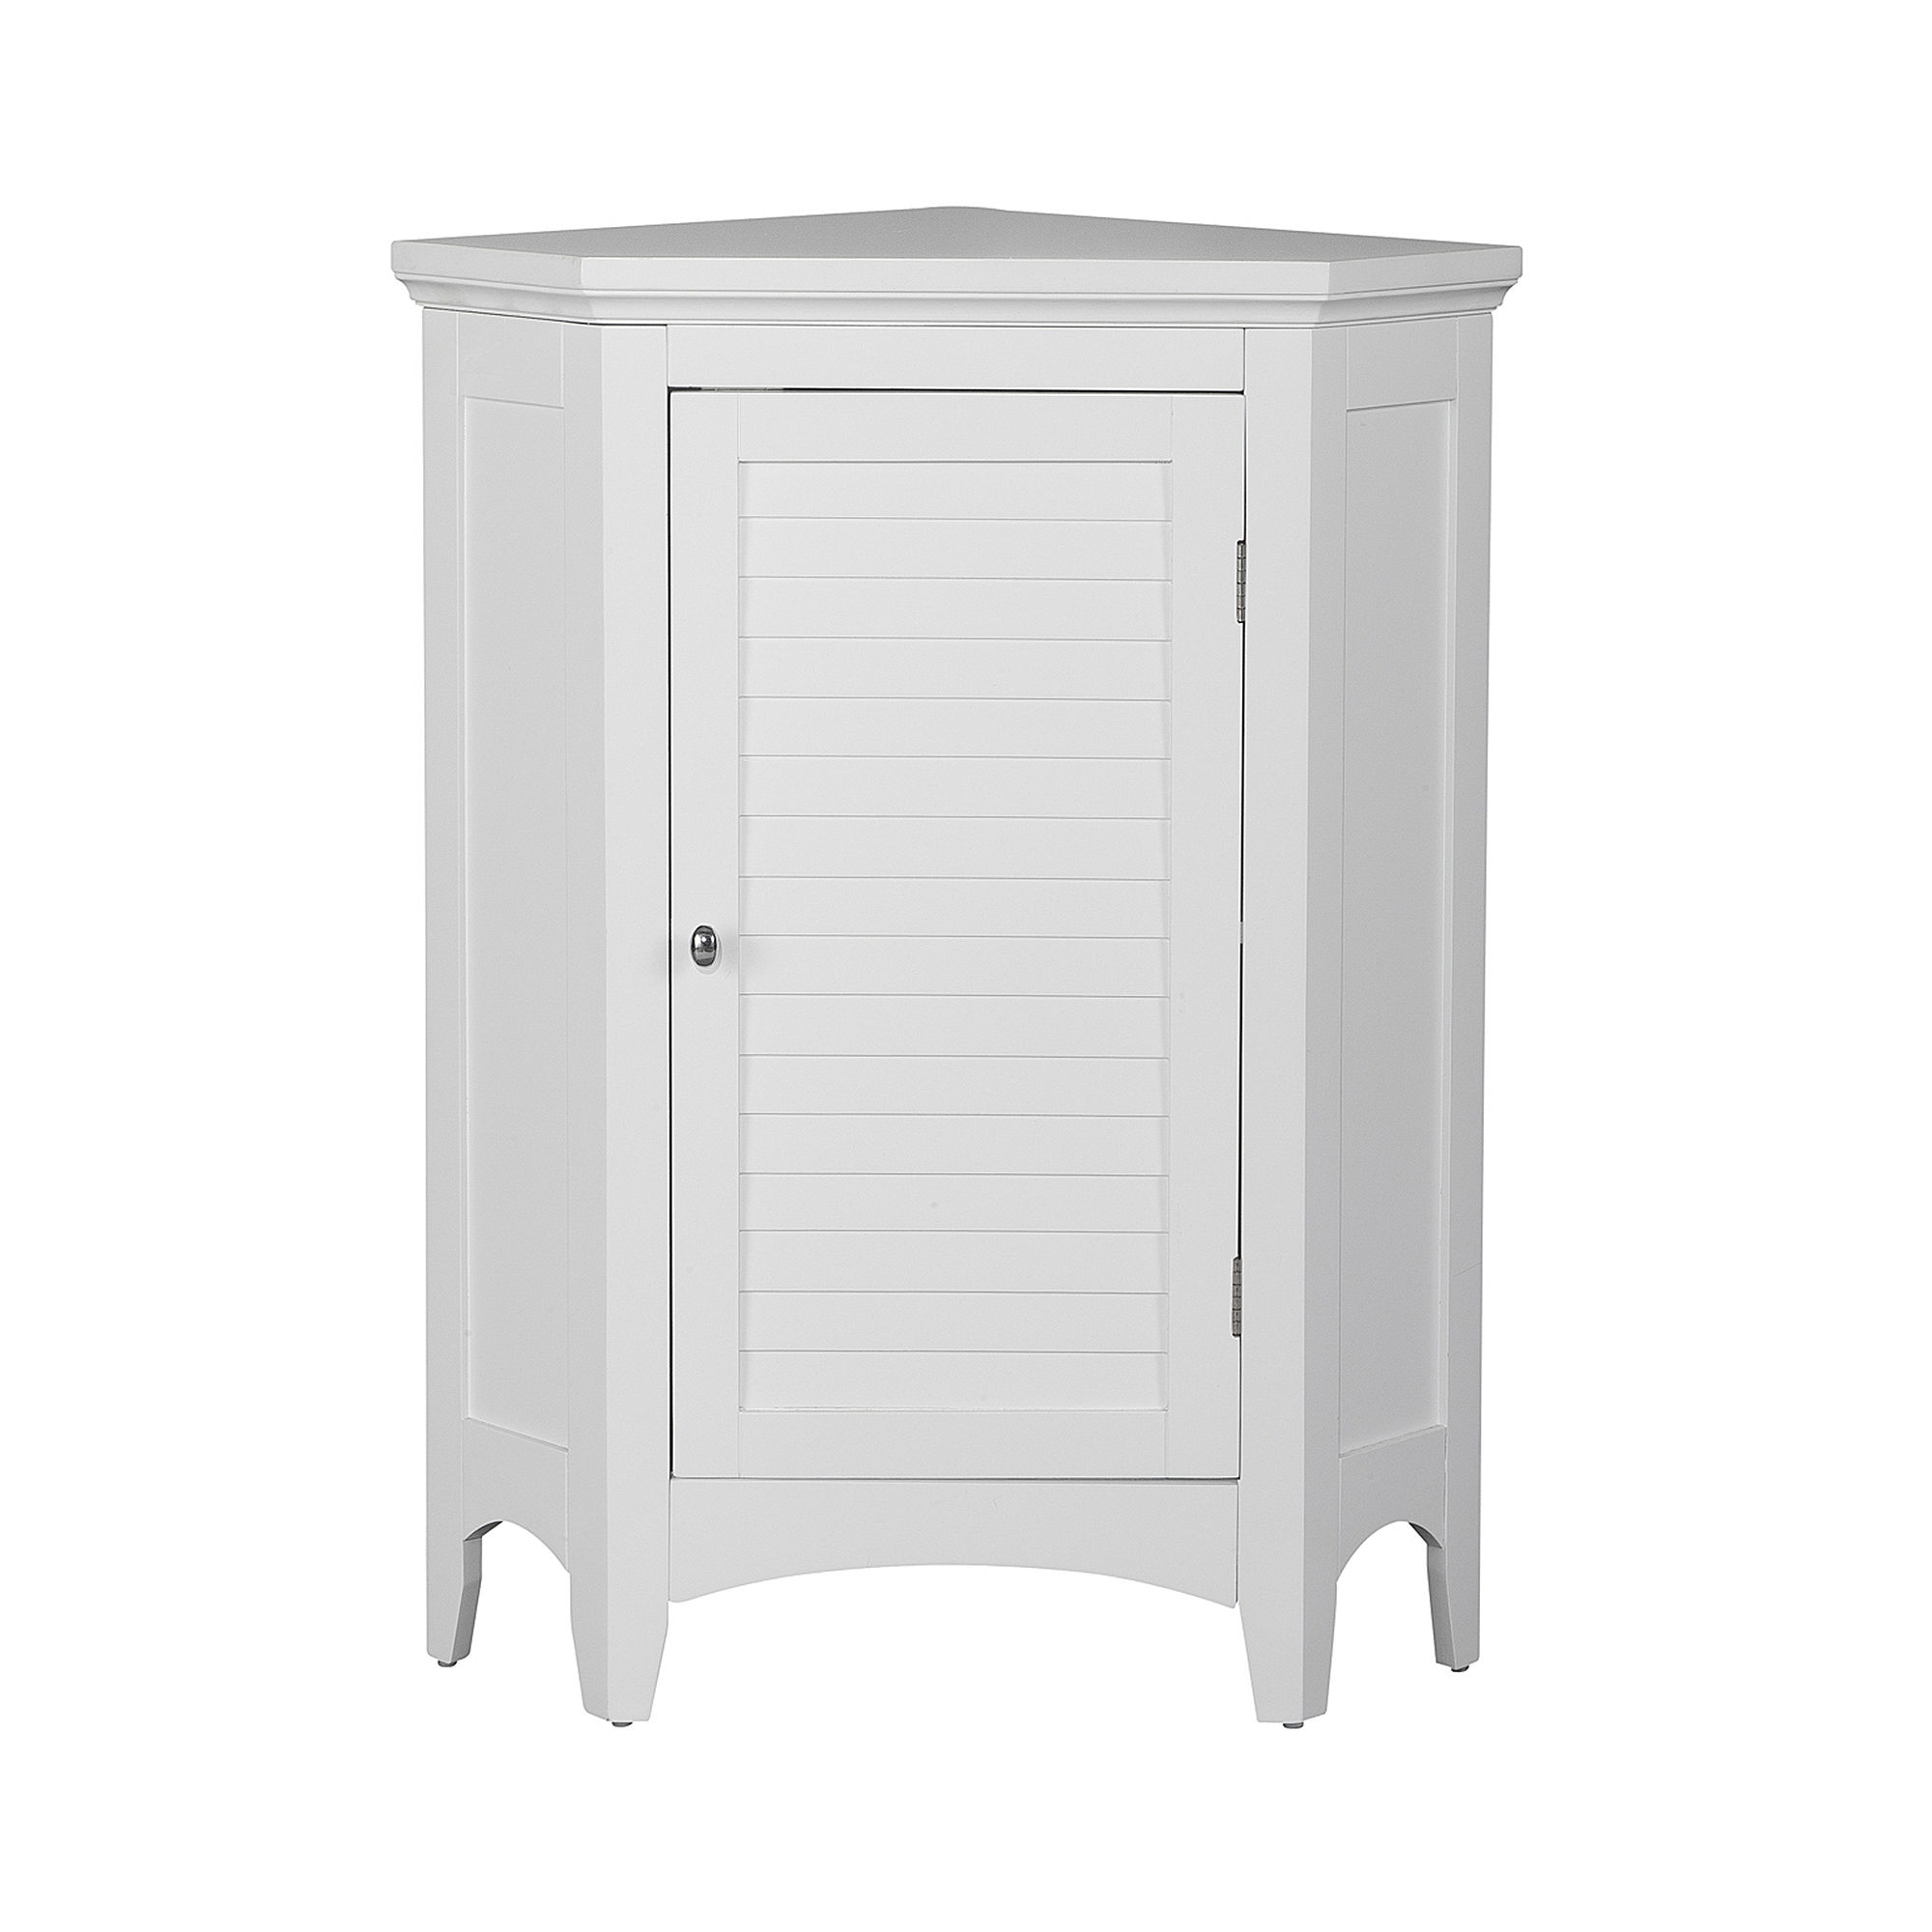 bathroom corner cabinets full height search